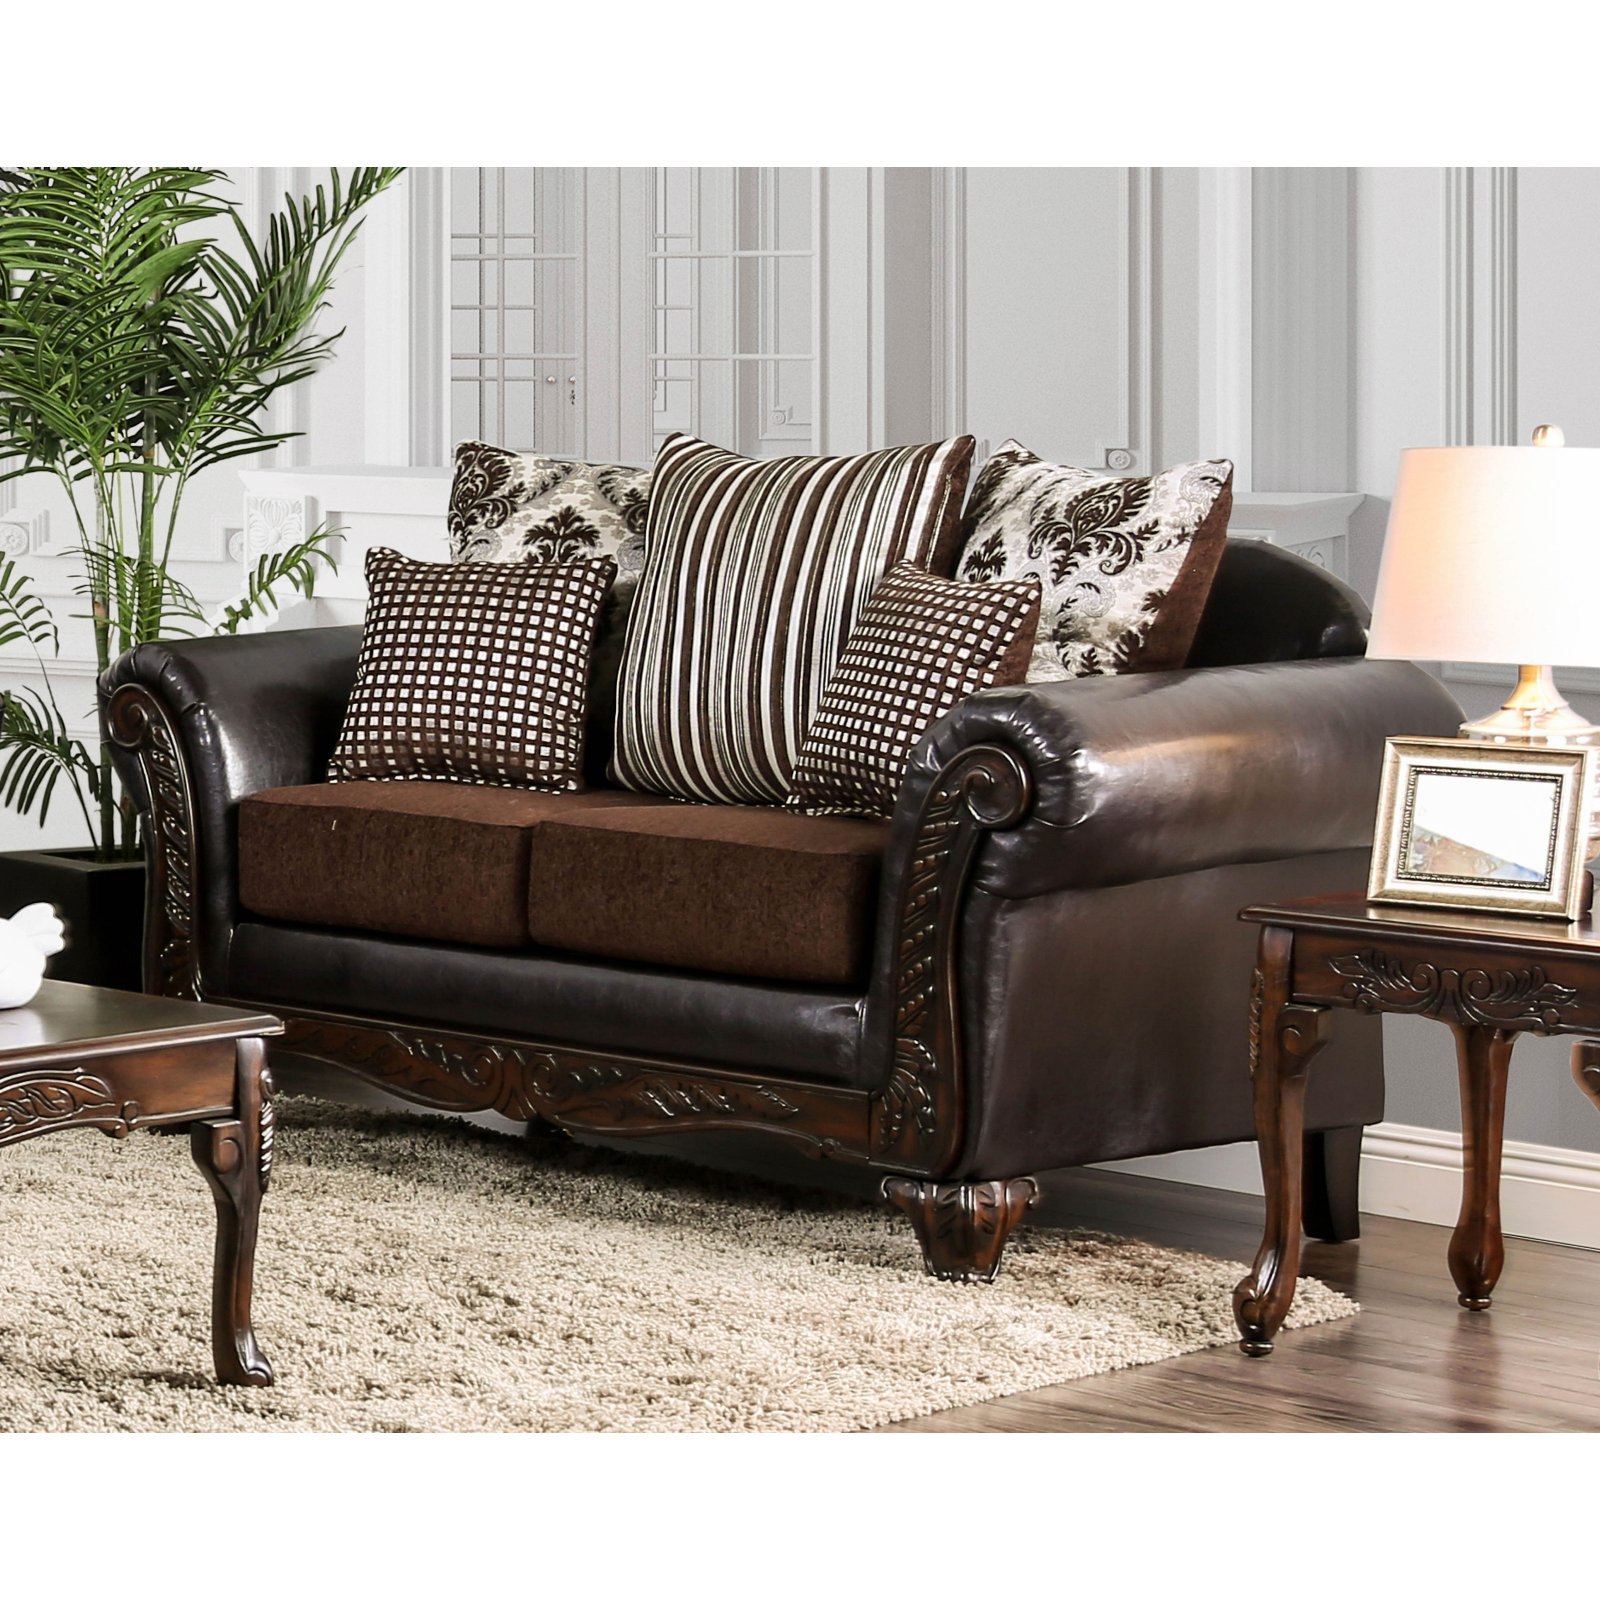 Furniture of America Verdugo Traditional Wood Carved Leatherette Loveseat